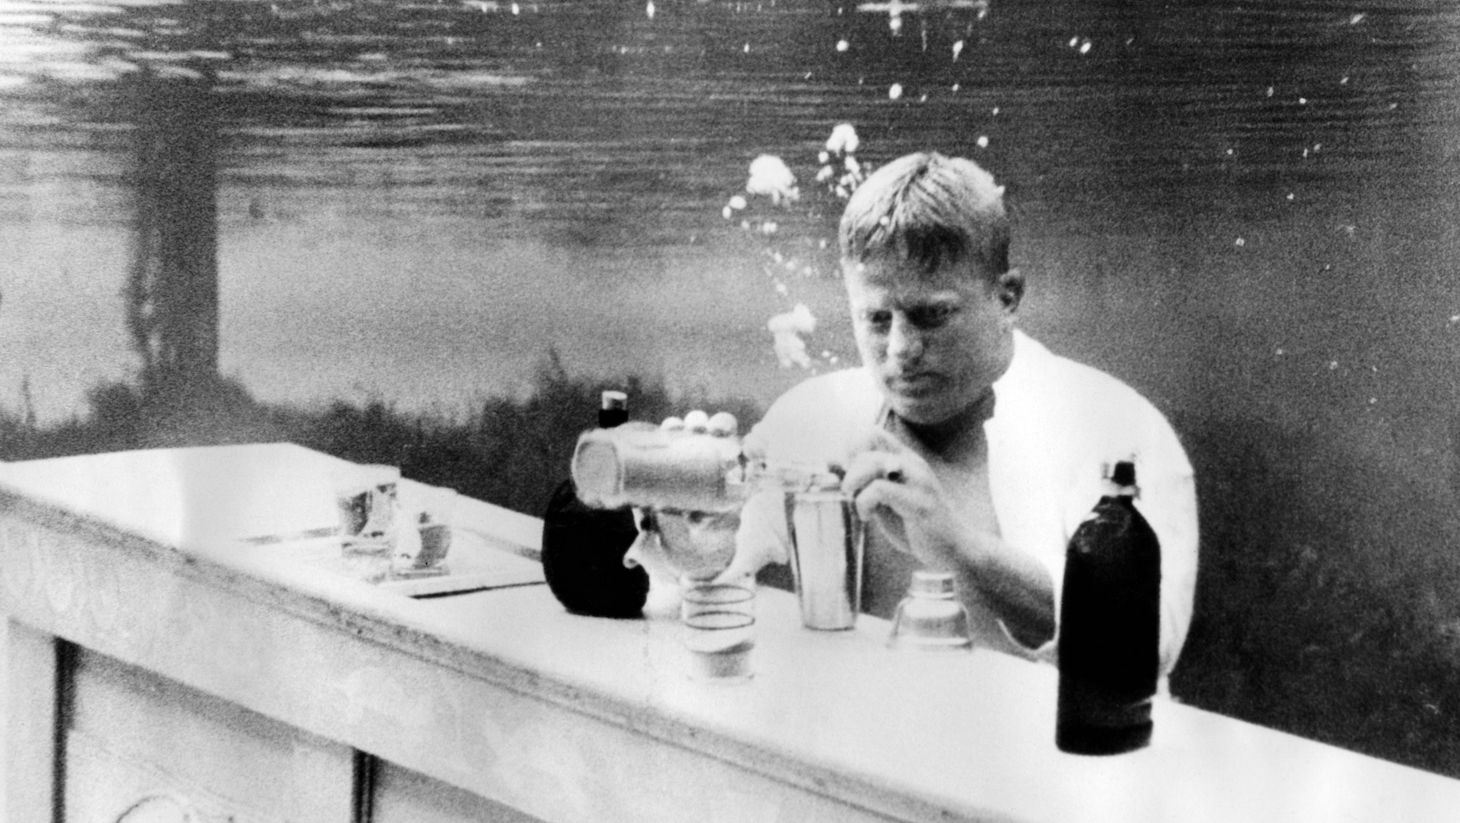 Picture taken on January 15, 1937 at Palm Springs showing a bartender mixing a cocktail under water in a swimming pool. (Photo by - / ACME / AFP) (Photo by -/ACME/AFP via Getty Images)